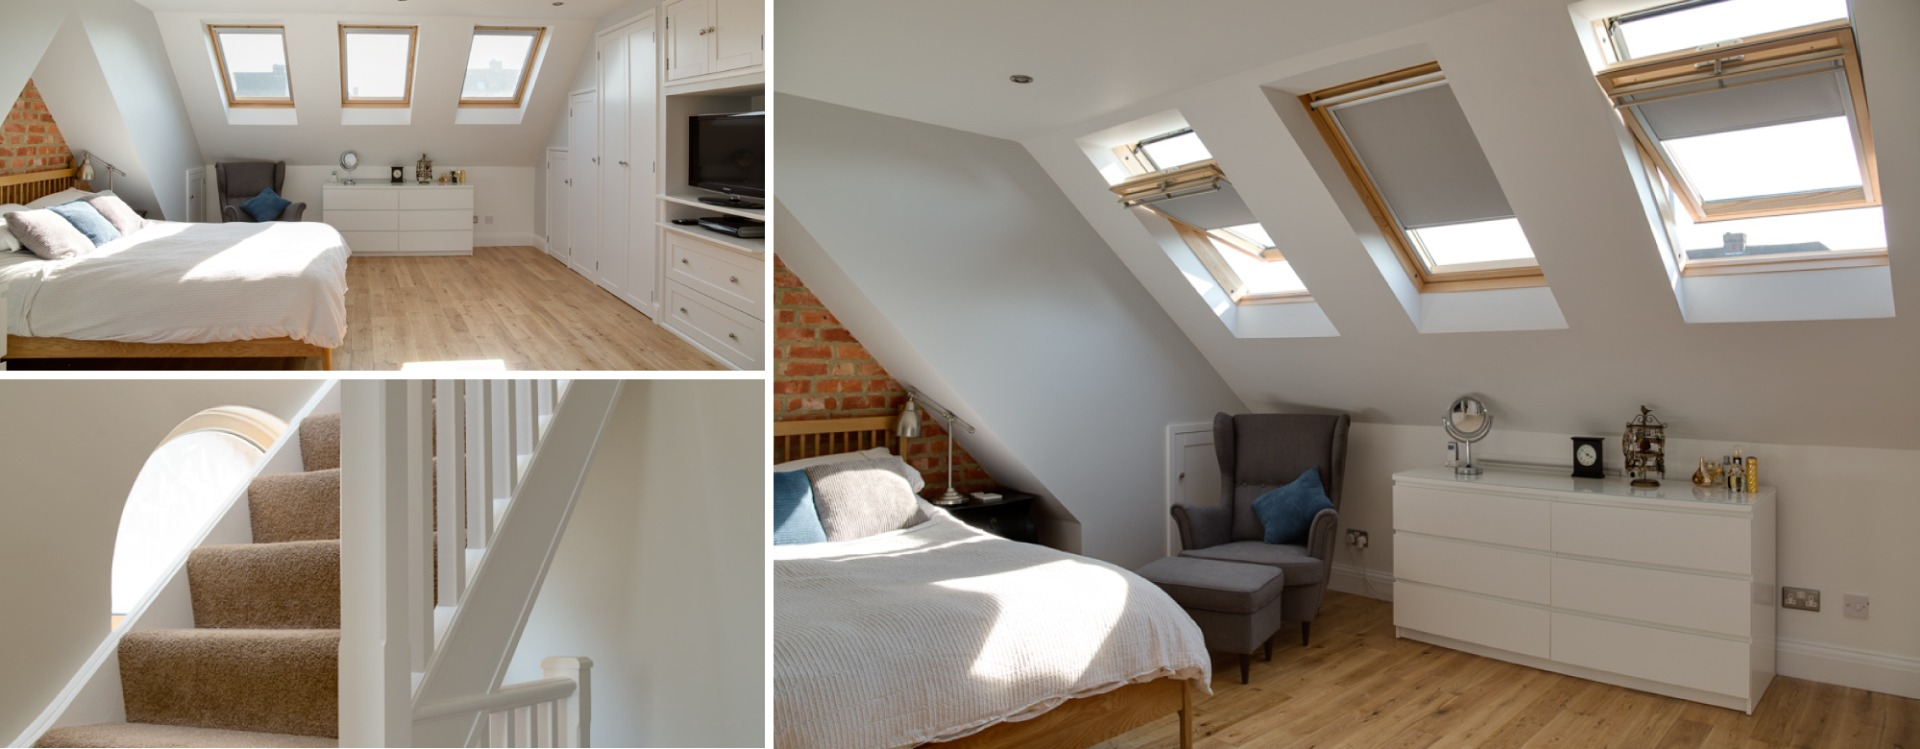 Velux Loft Conversions Kent Velux Loft Conversion London